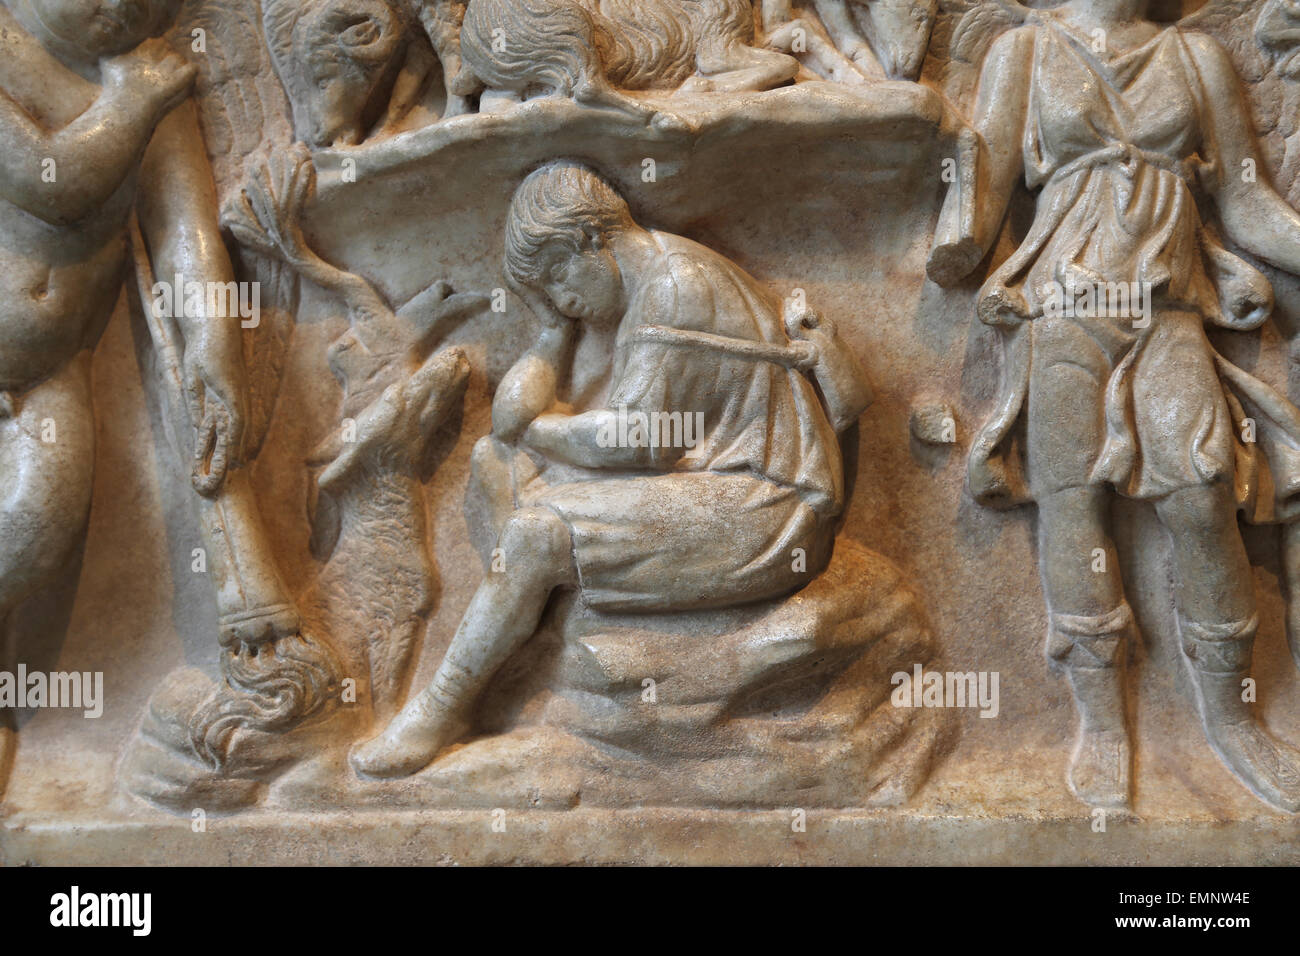 Marble sarcophagus with the myth of Endymion. Roman. Antonine period, 2nd c.AD. Detail of Endymion, a beautiful - Stock Image